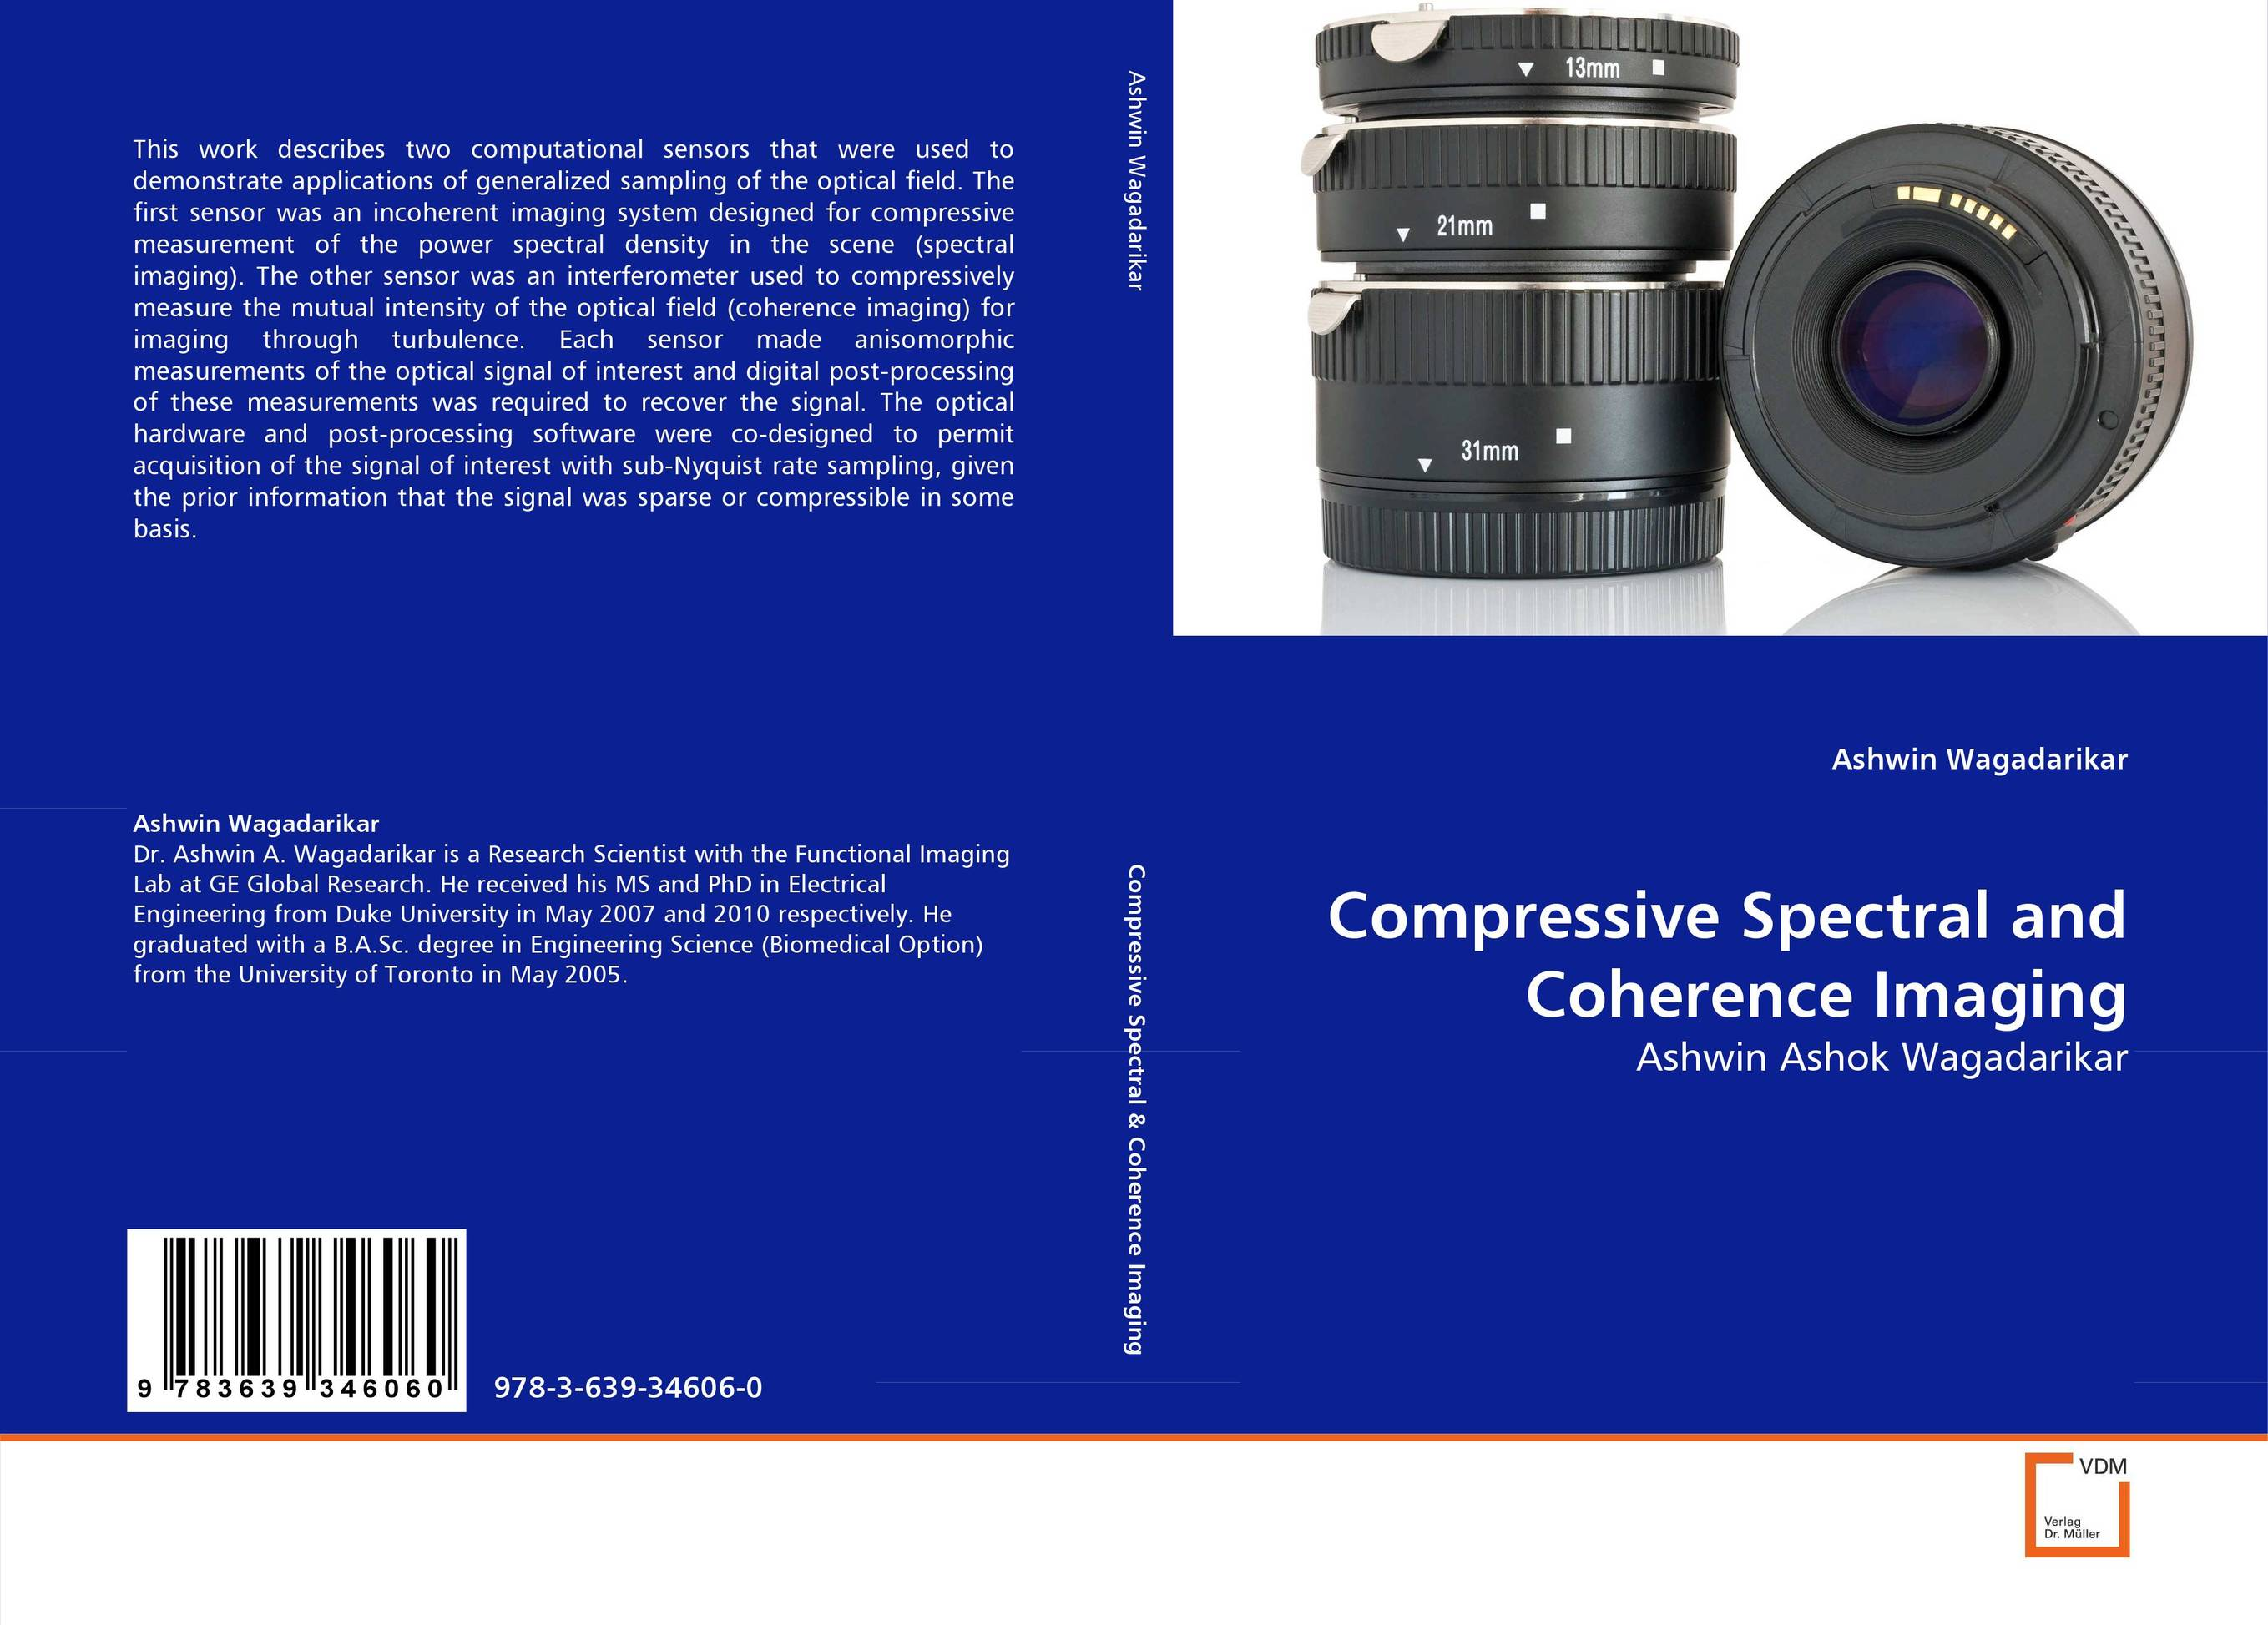 Compressive Spectral and Coherence Imaging microwave imaging for security applications